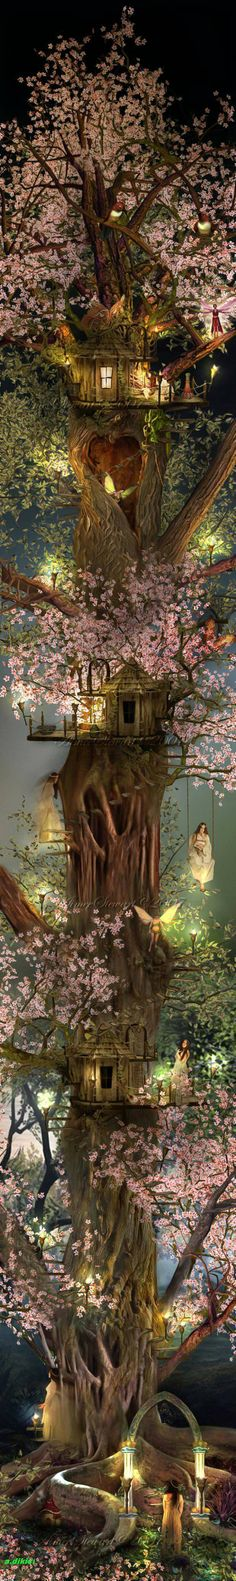 New fairy tree house illustration fantasy art Ideas Samhain, Fantasy World, Fantasy Art, Fairy Tree, Fairy Land, Fairy Dust, Fairy Houses, Tree Houses, Urban Art